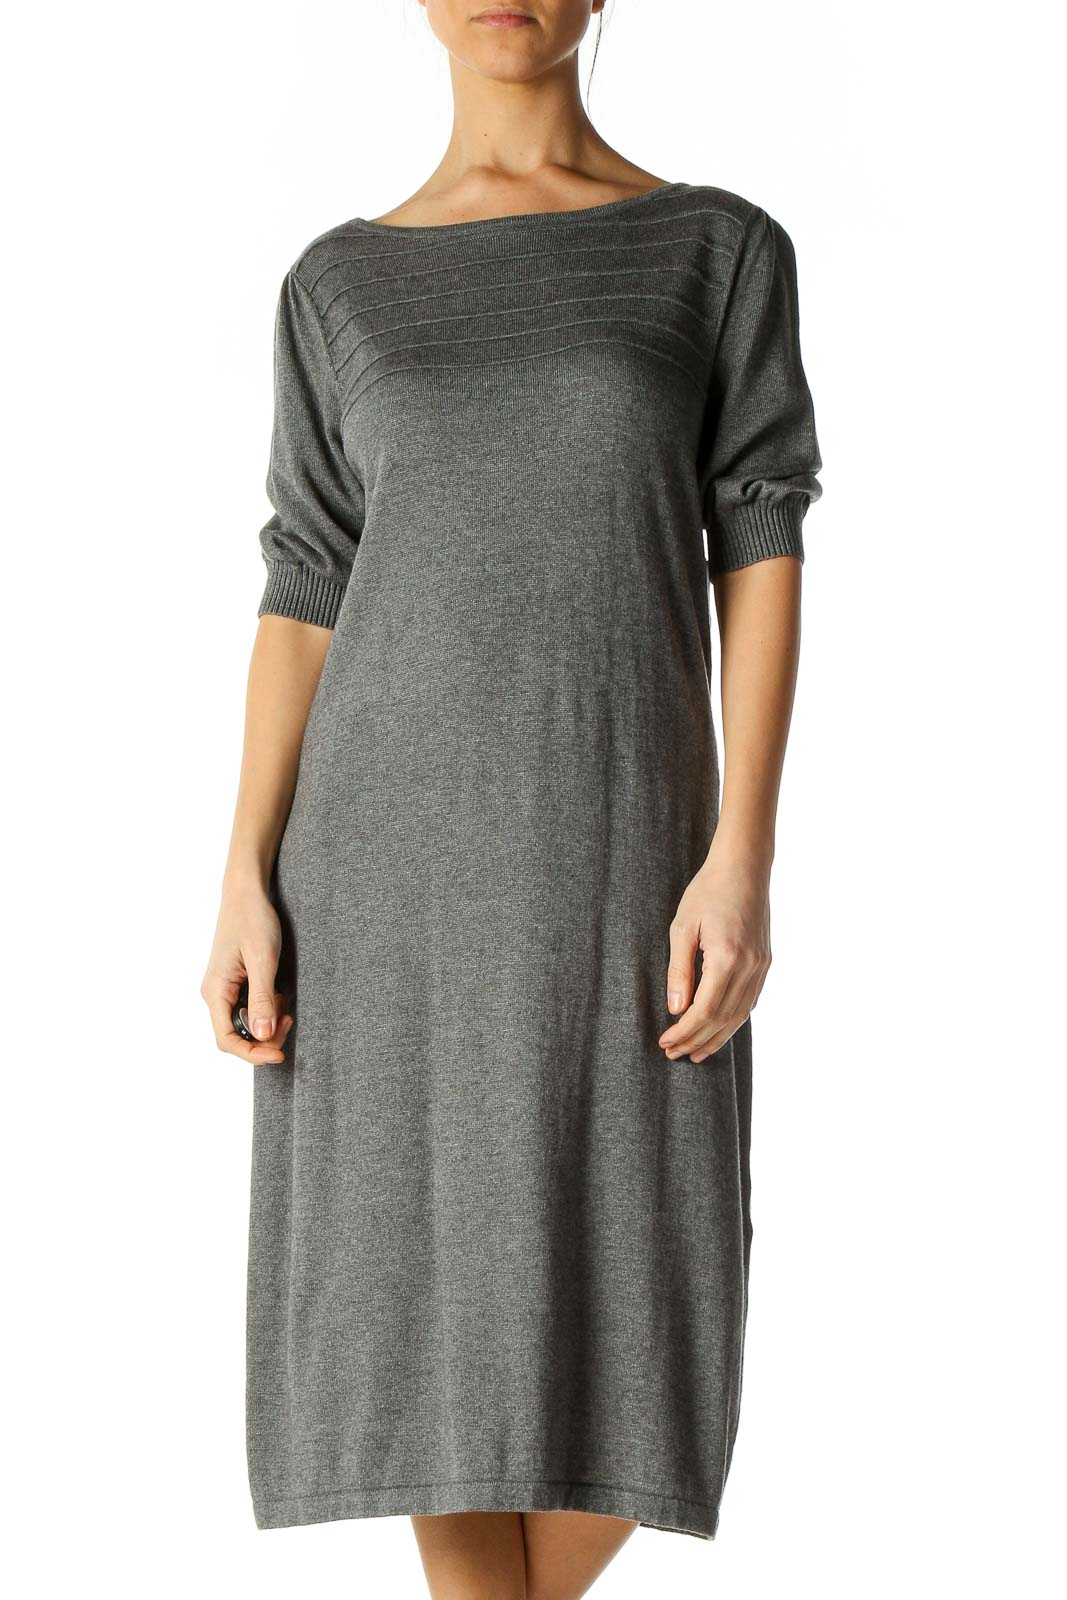 Gray Textured Casual Shift Dress Front